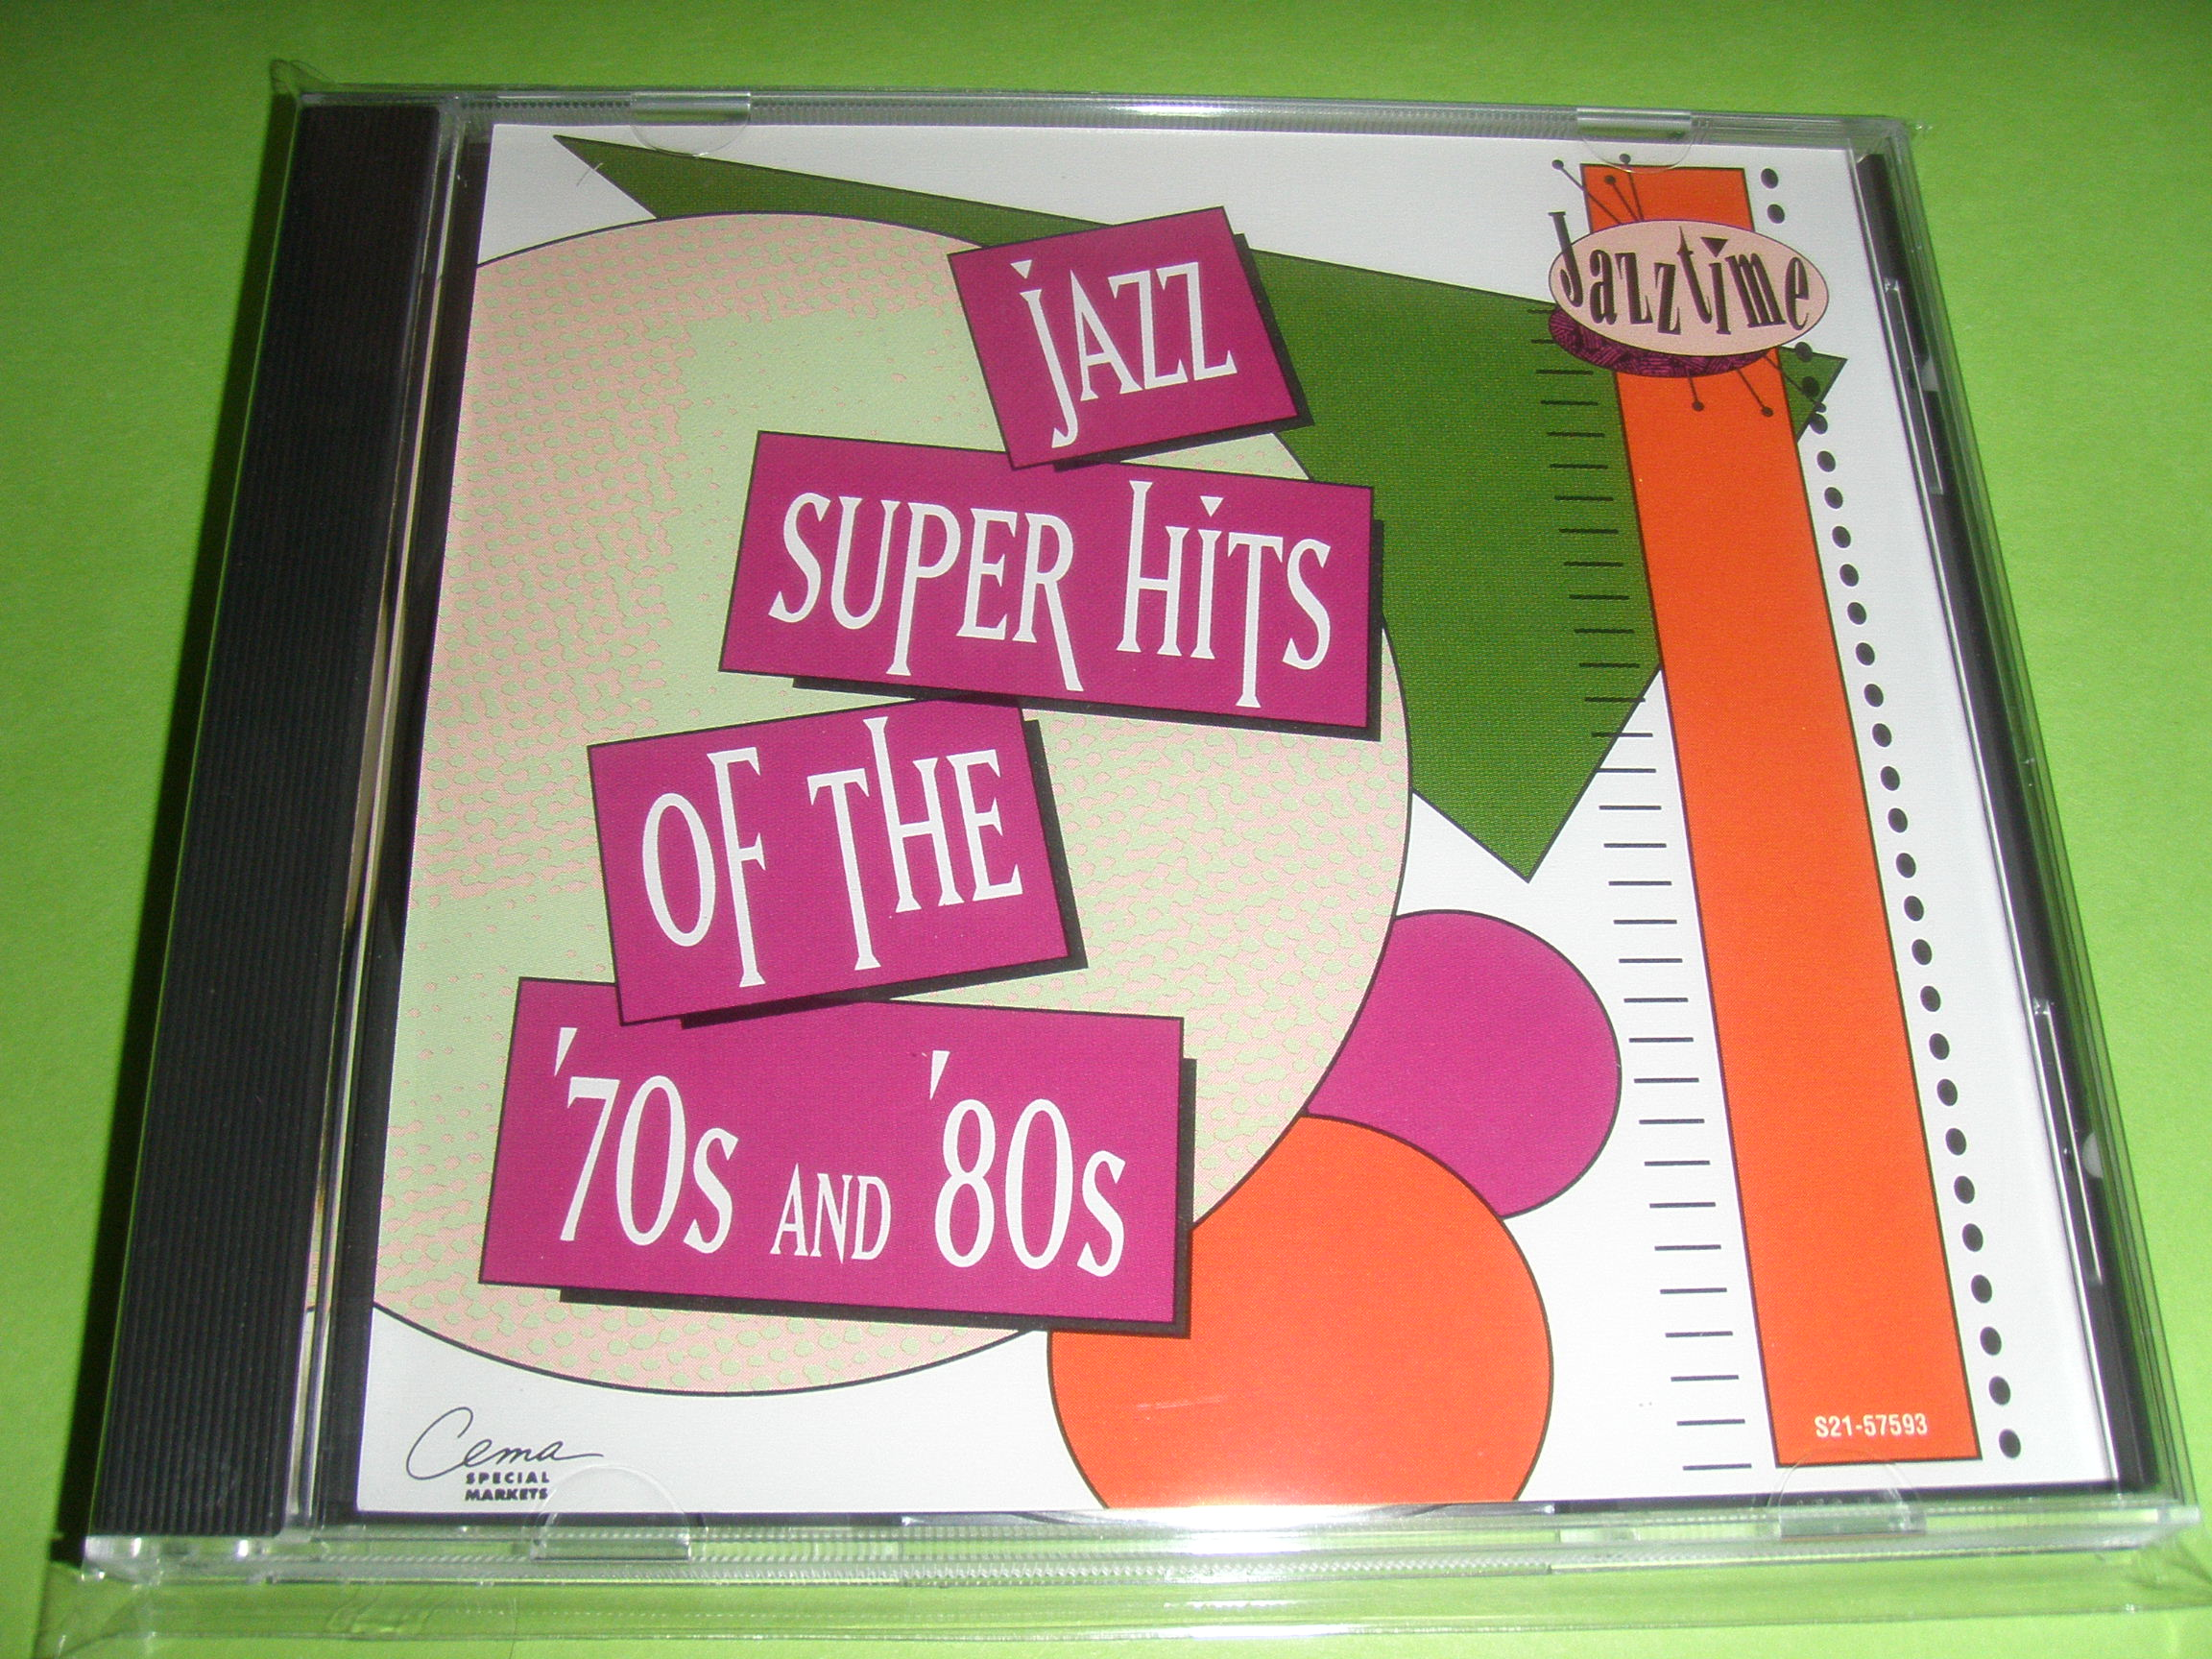 Jazz Super Hits Of The '70s And '80s